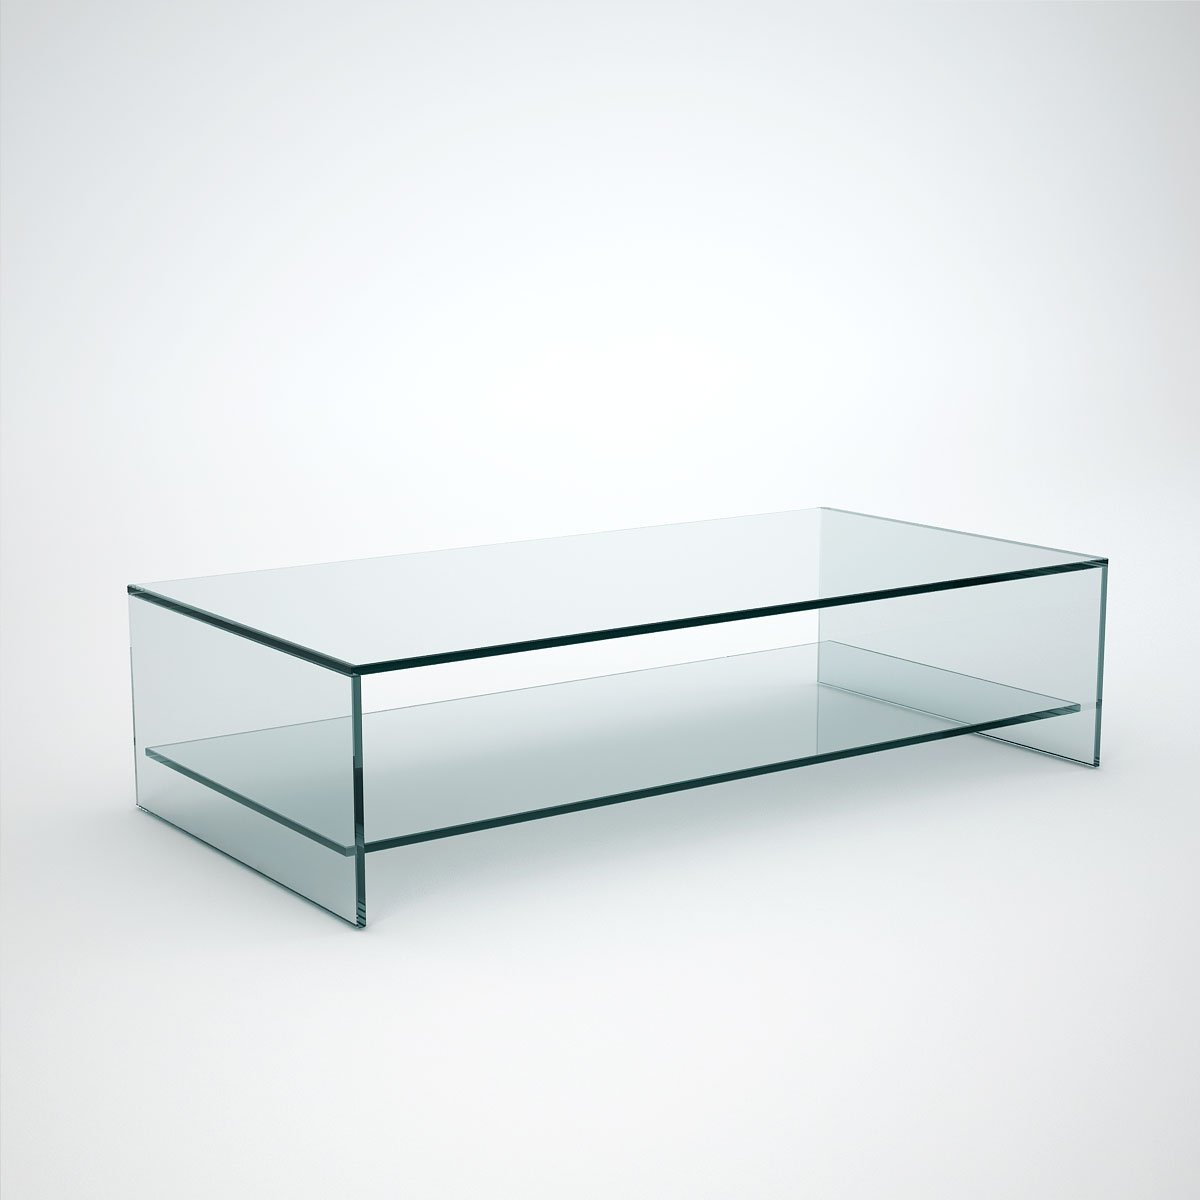 Judd rectangle glass coffee table with shelf klarity glass furniture Coffee table with shelf